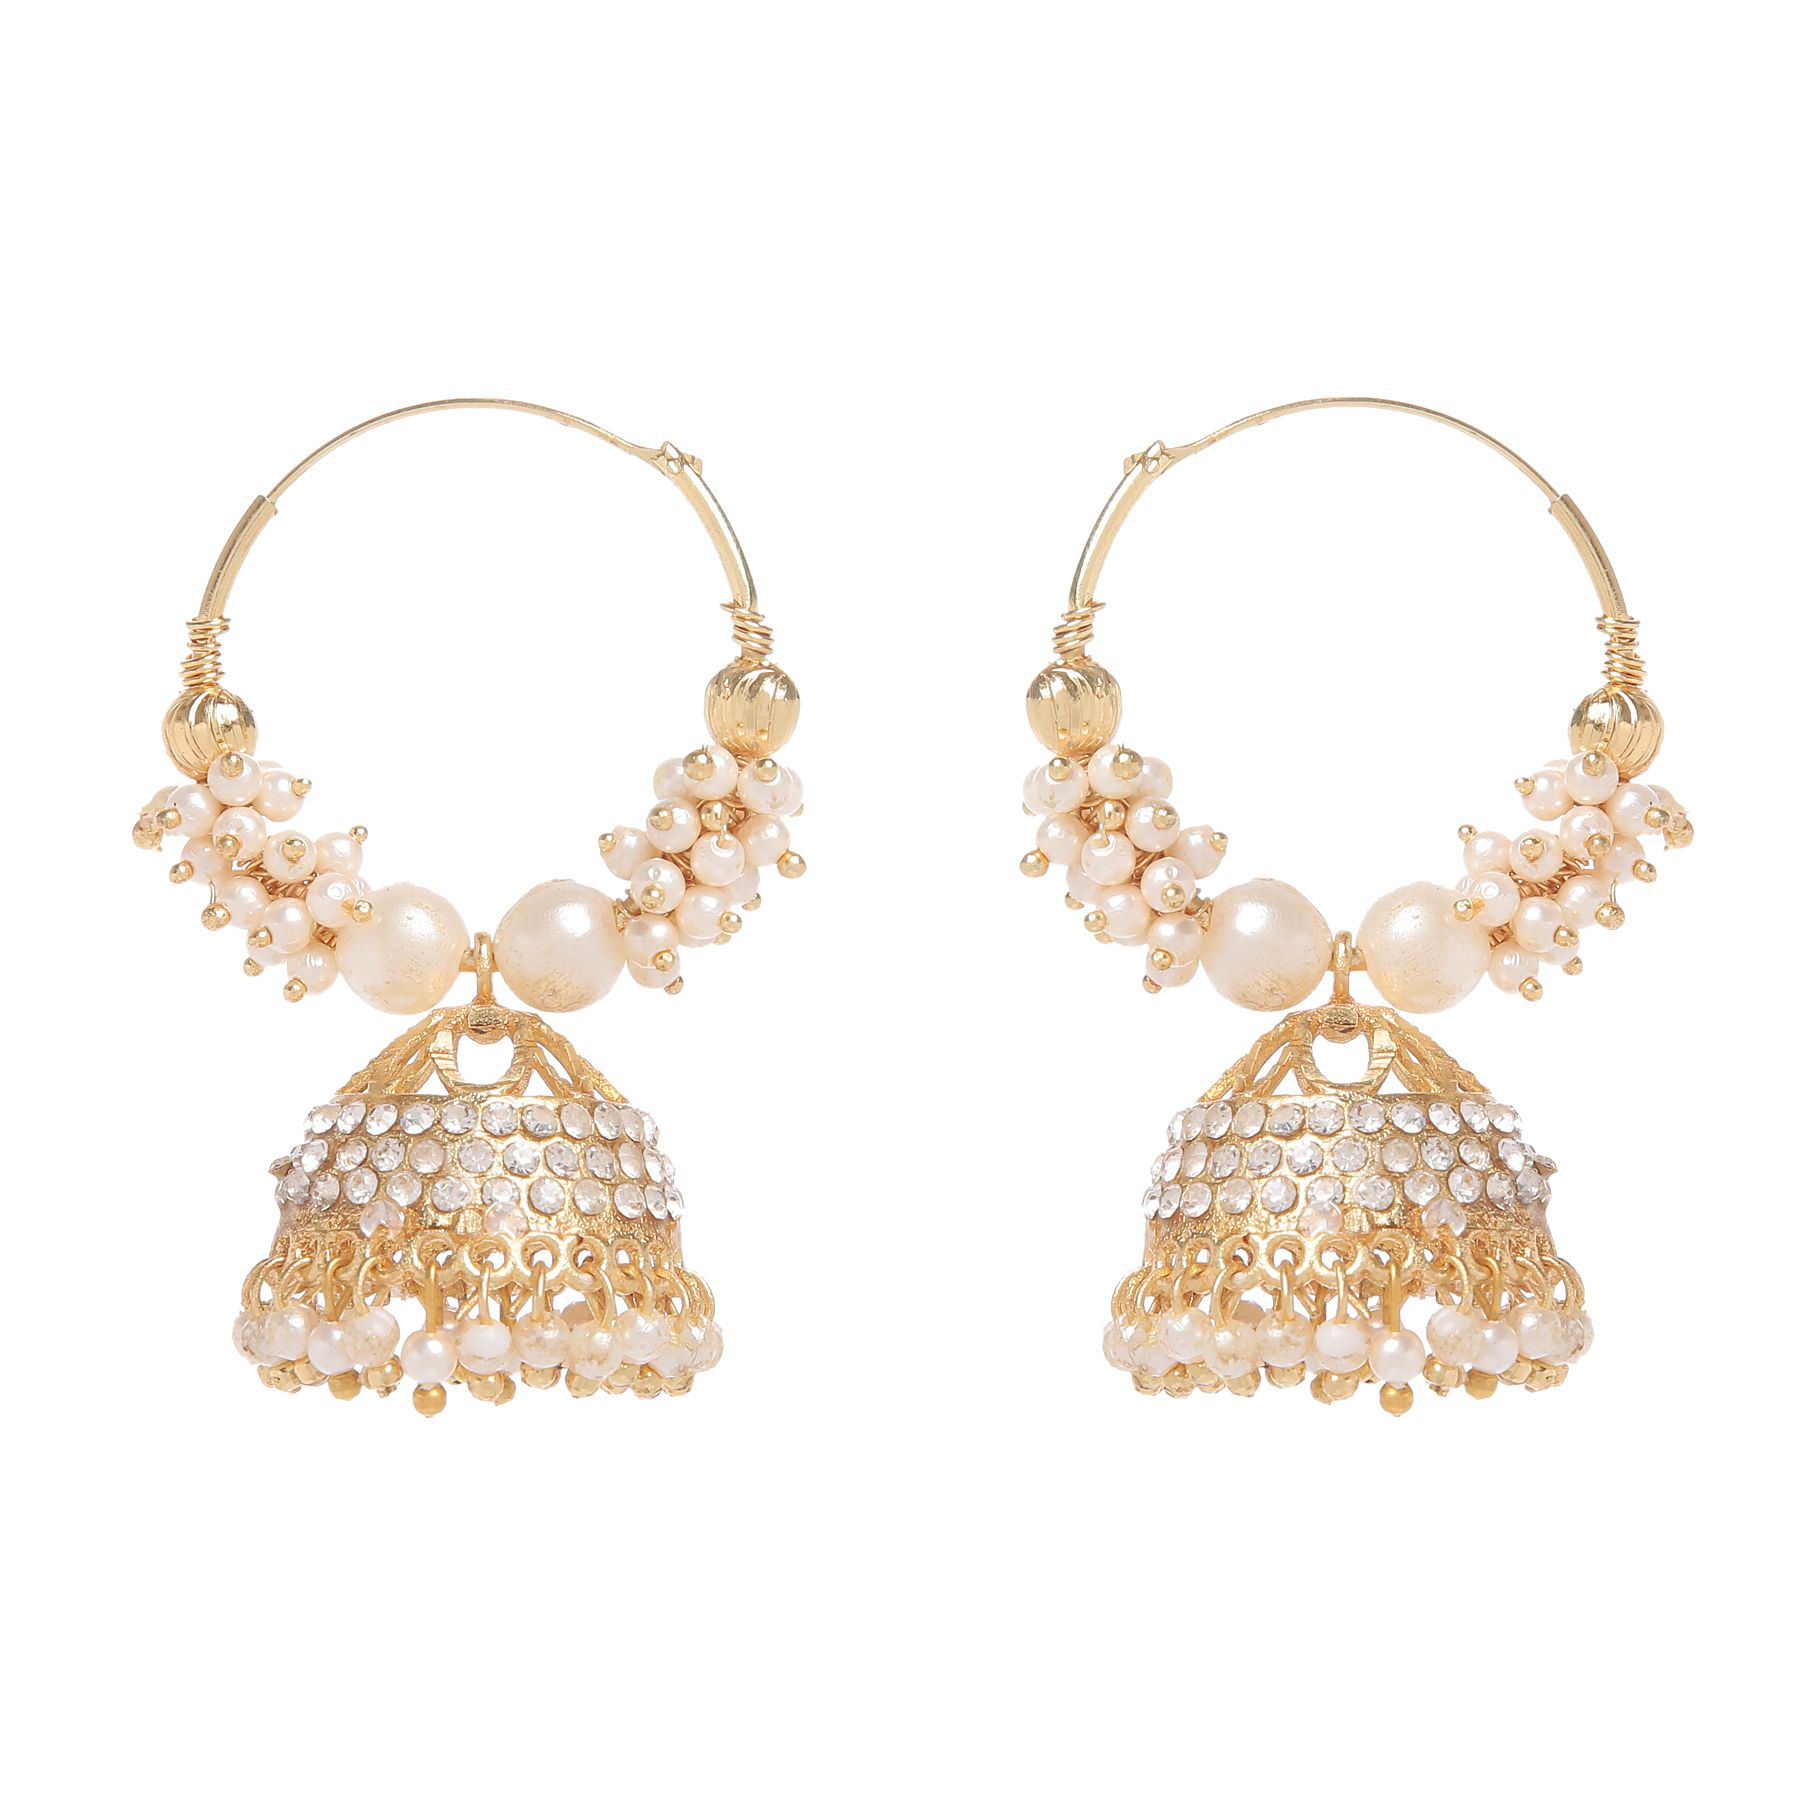 GoldNera Golden and White Alloy Jhumki Earrings